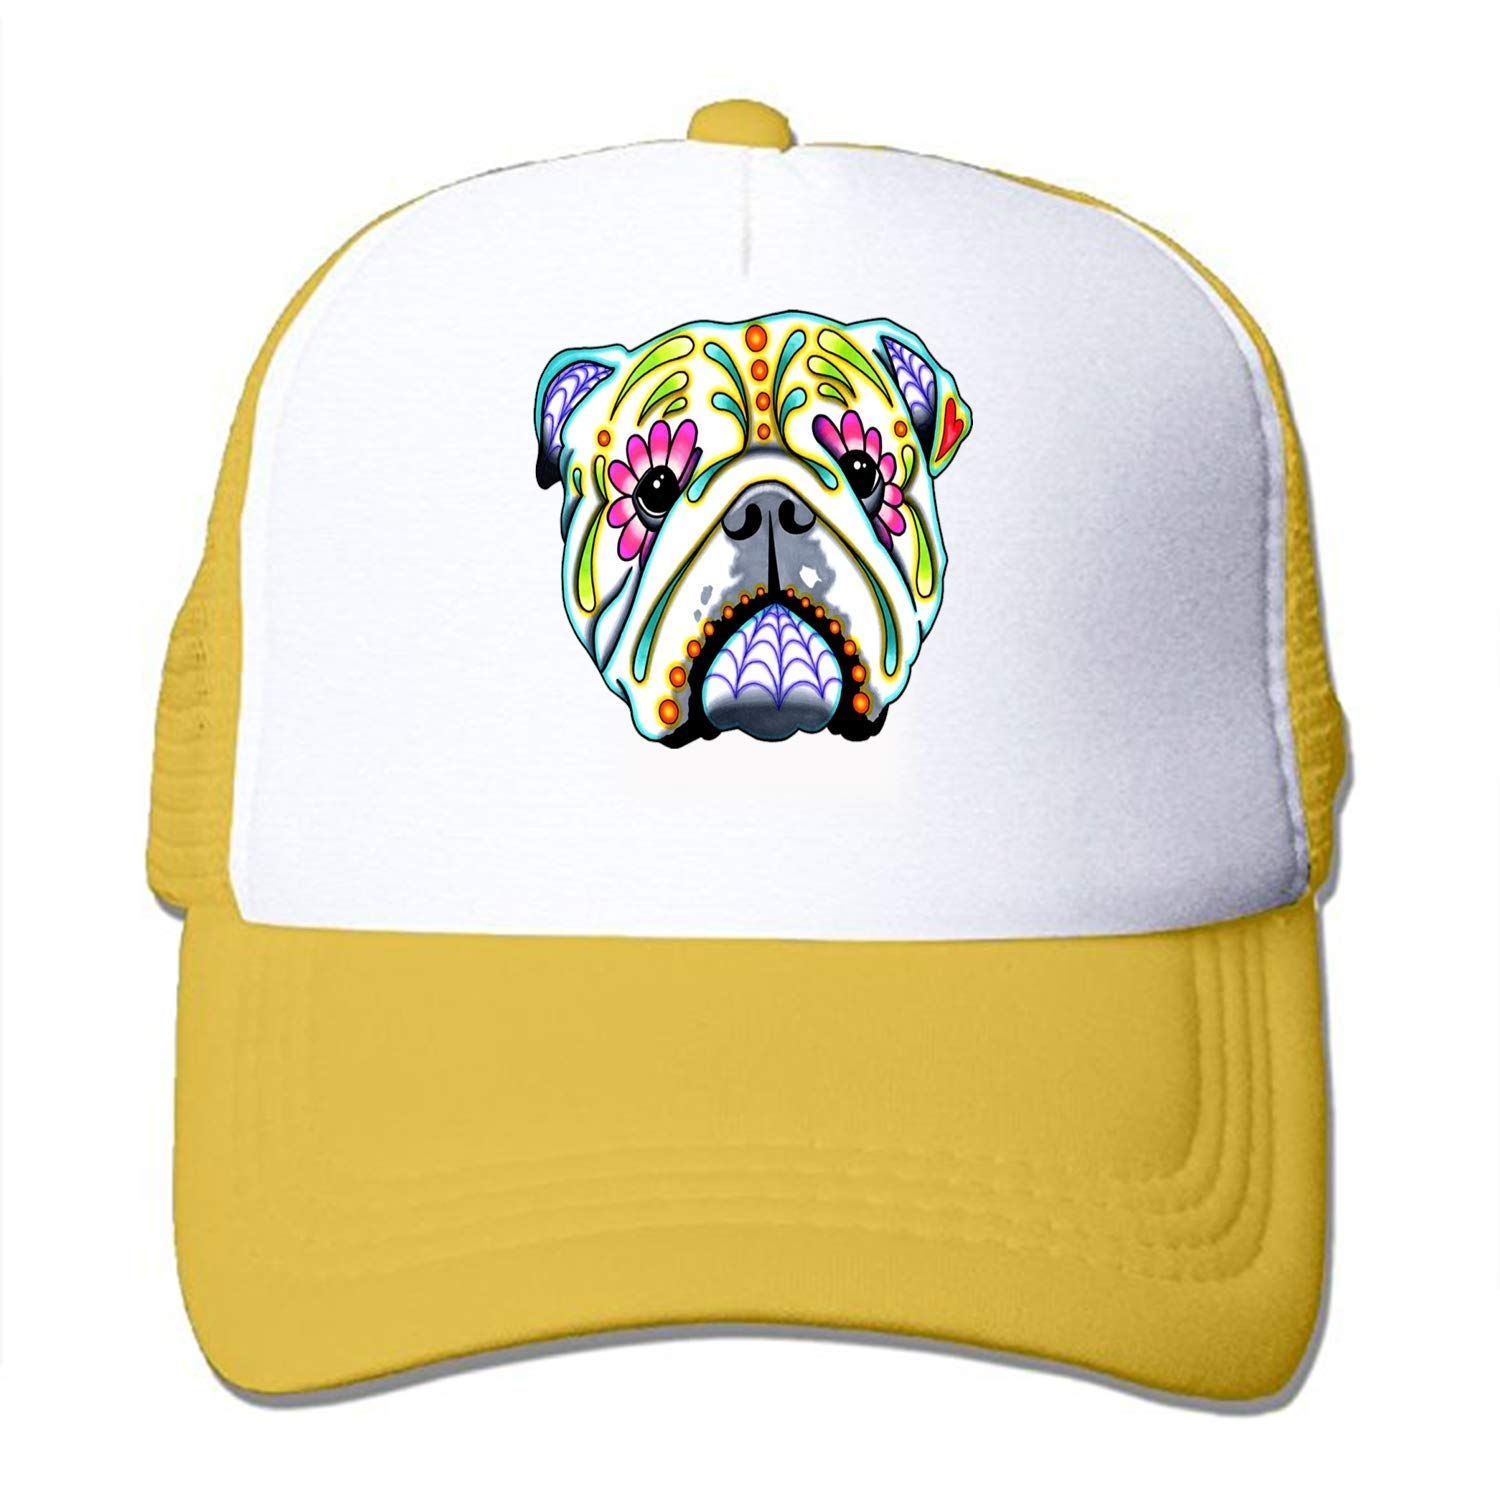 c008cb701b0 Get Quotations · Una Stowe Adult Tribal Pug Print Pattern Adjustable  Baseball Cap Hat